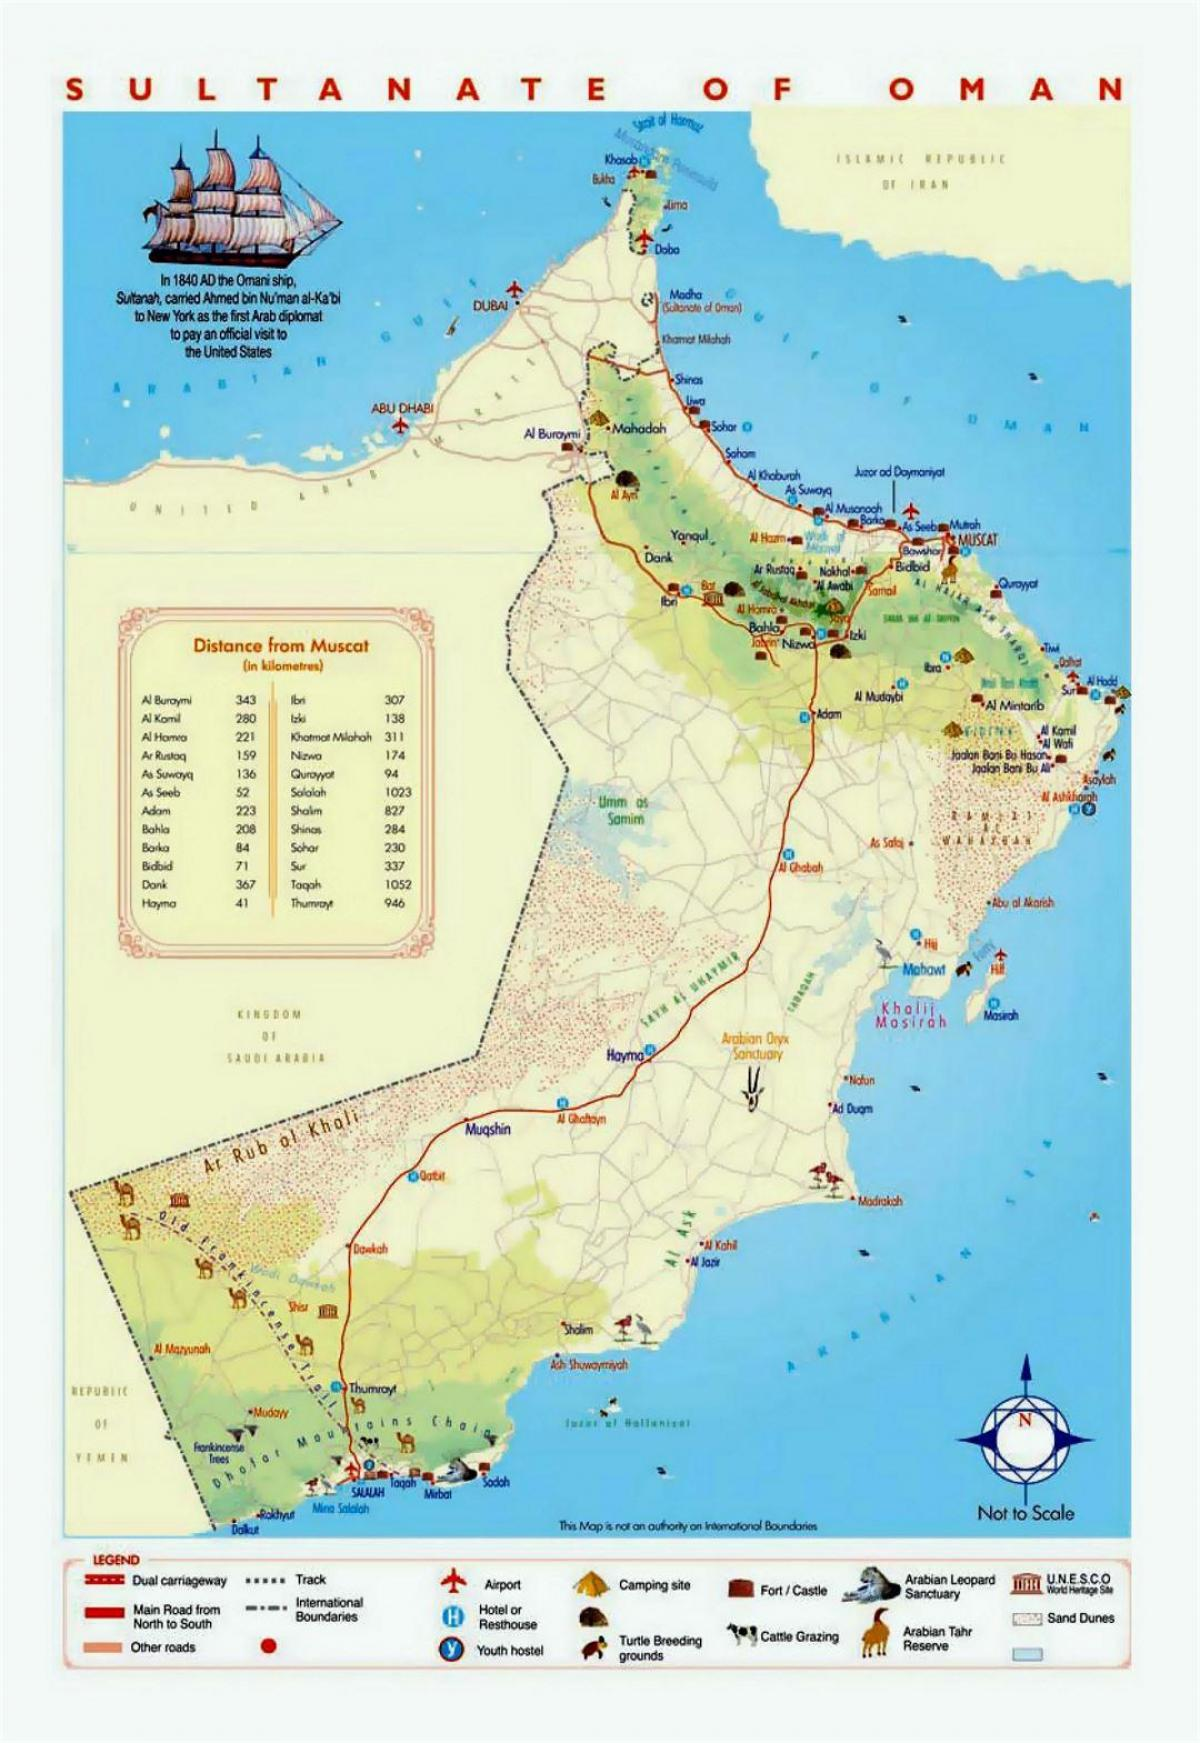 Oman tourist places map